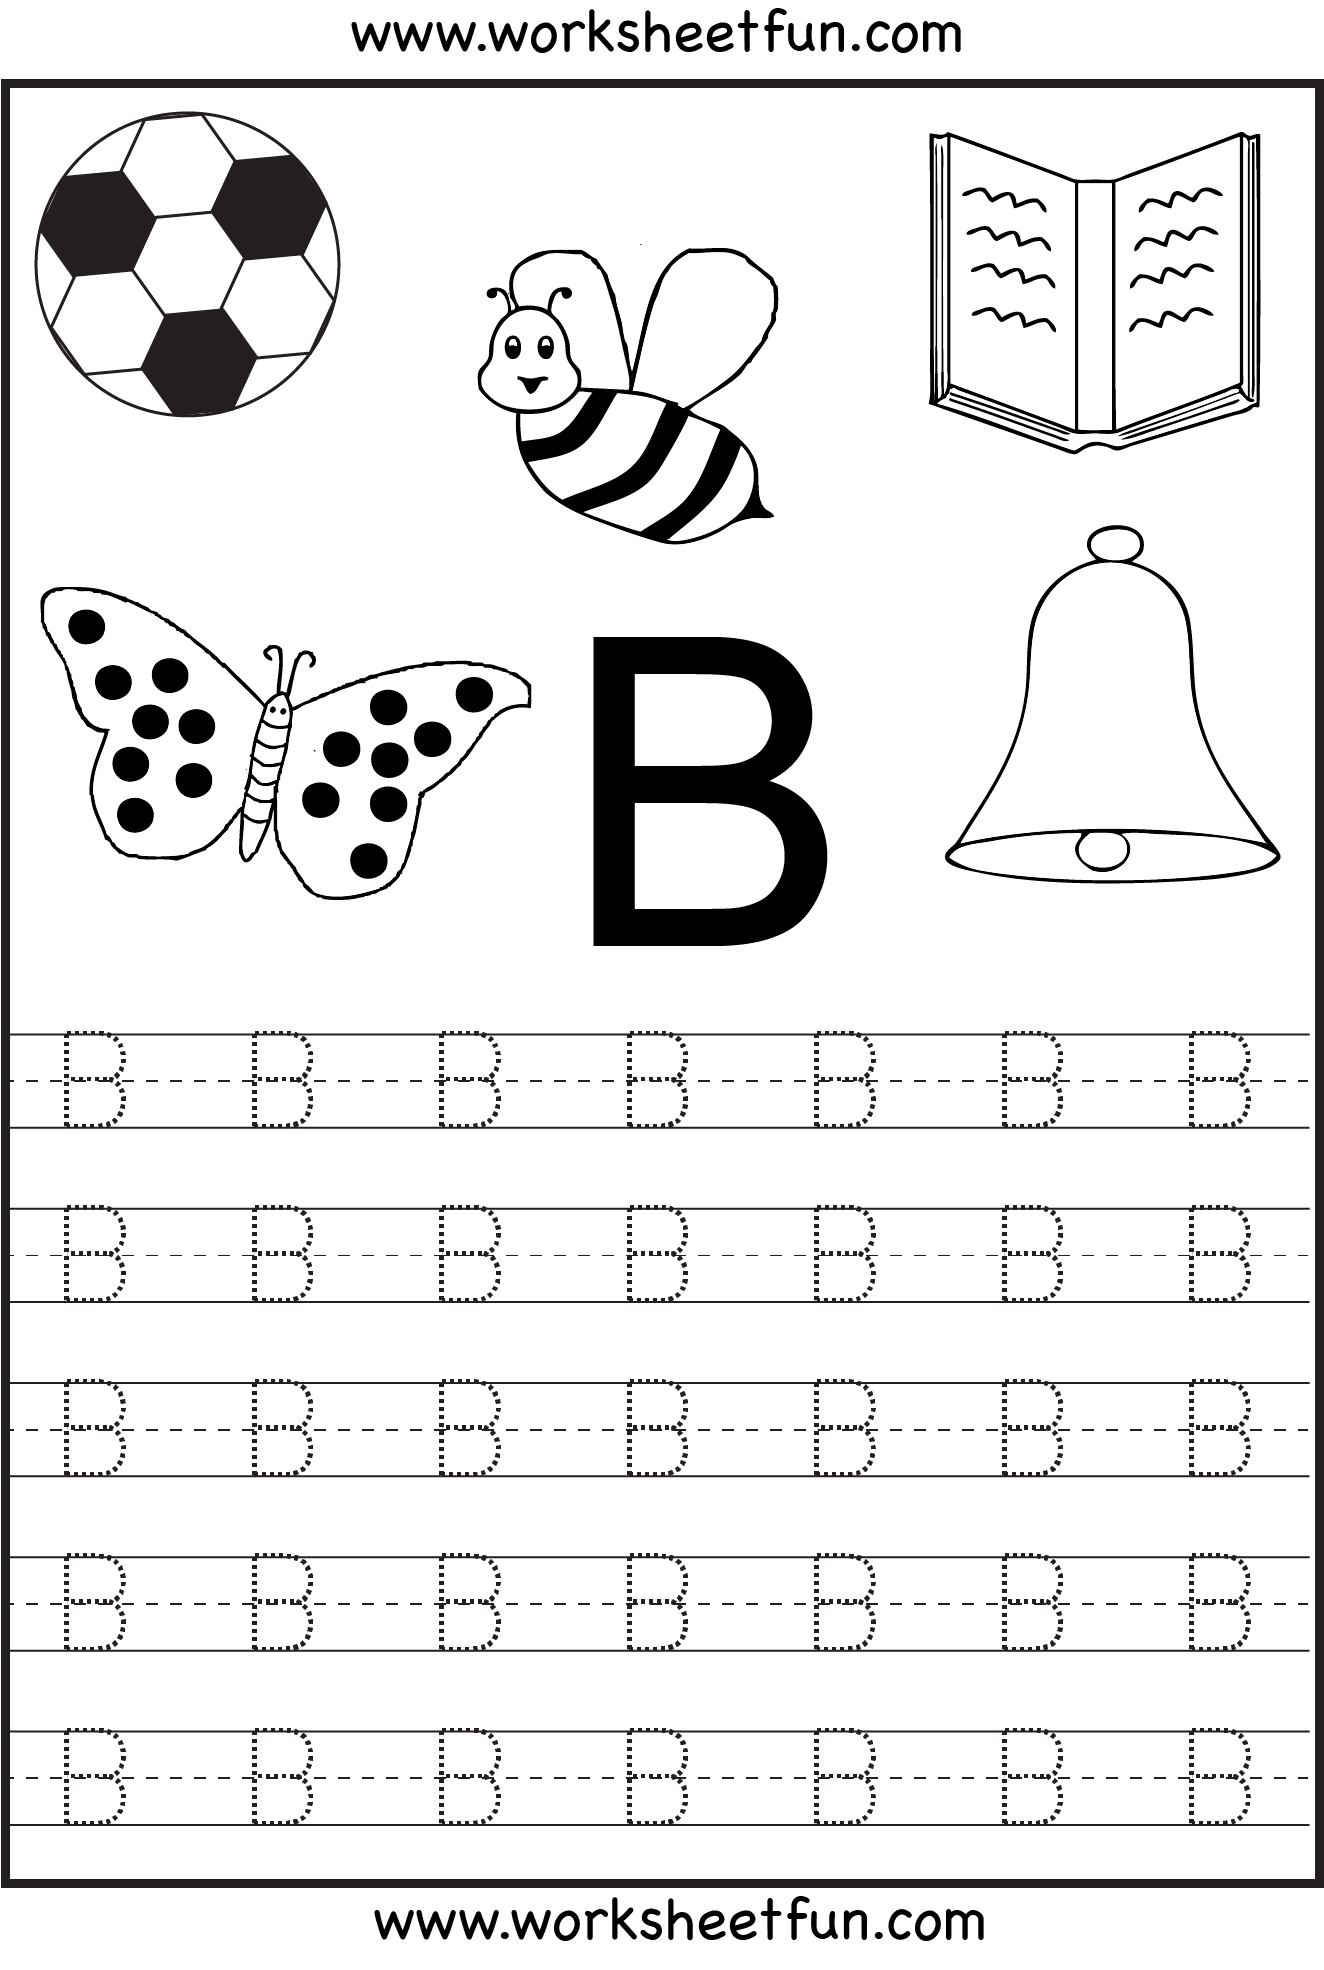 Printables Pre-k Worksheets Alphabet Tracing action preschool alphabet and on pinterest free printable letter tracing worksheets for kindergarten 26 worksheets